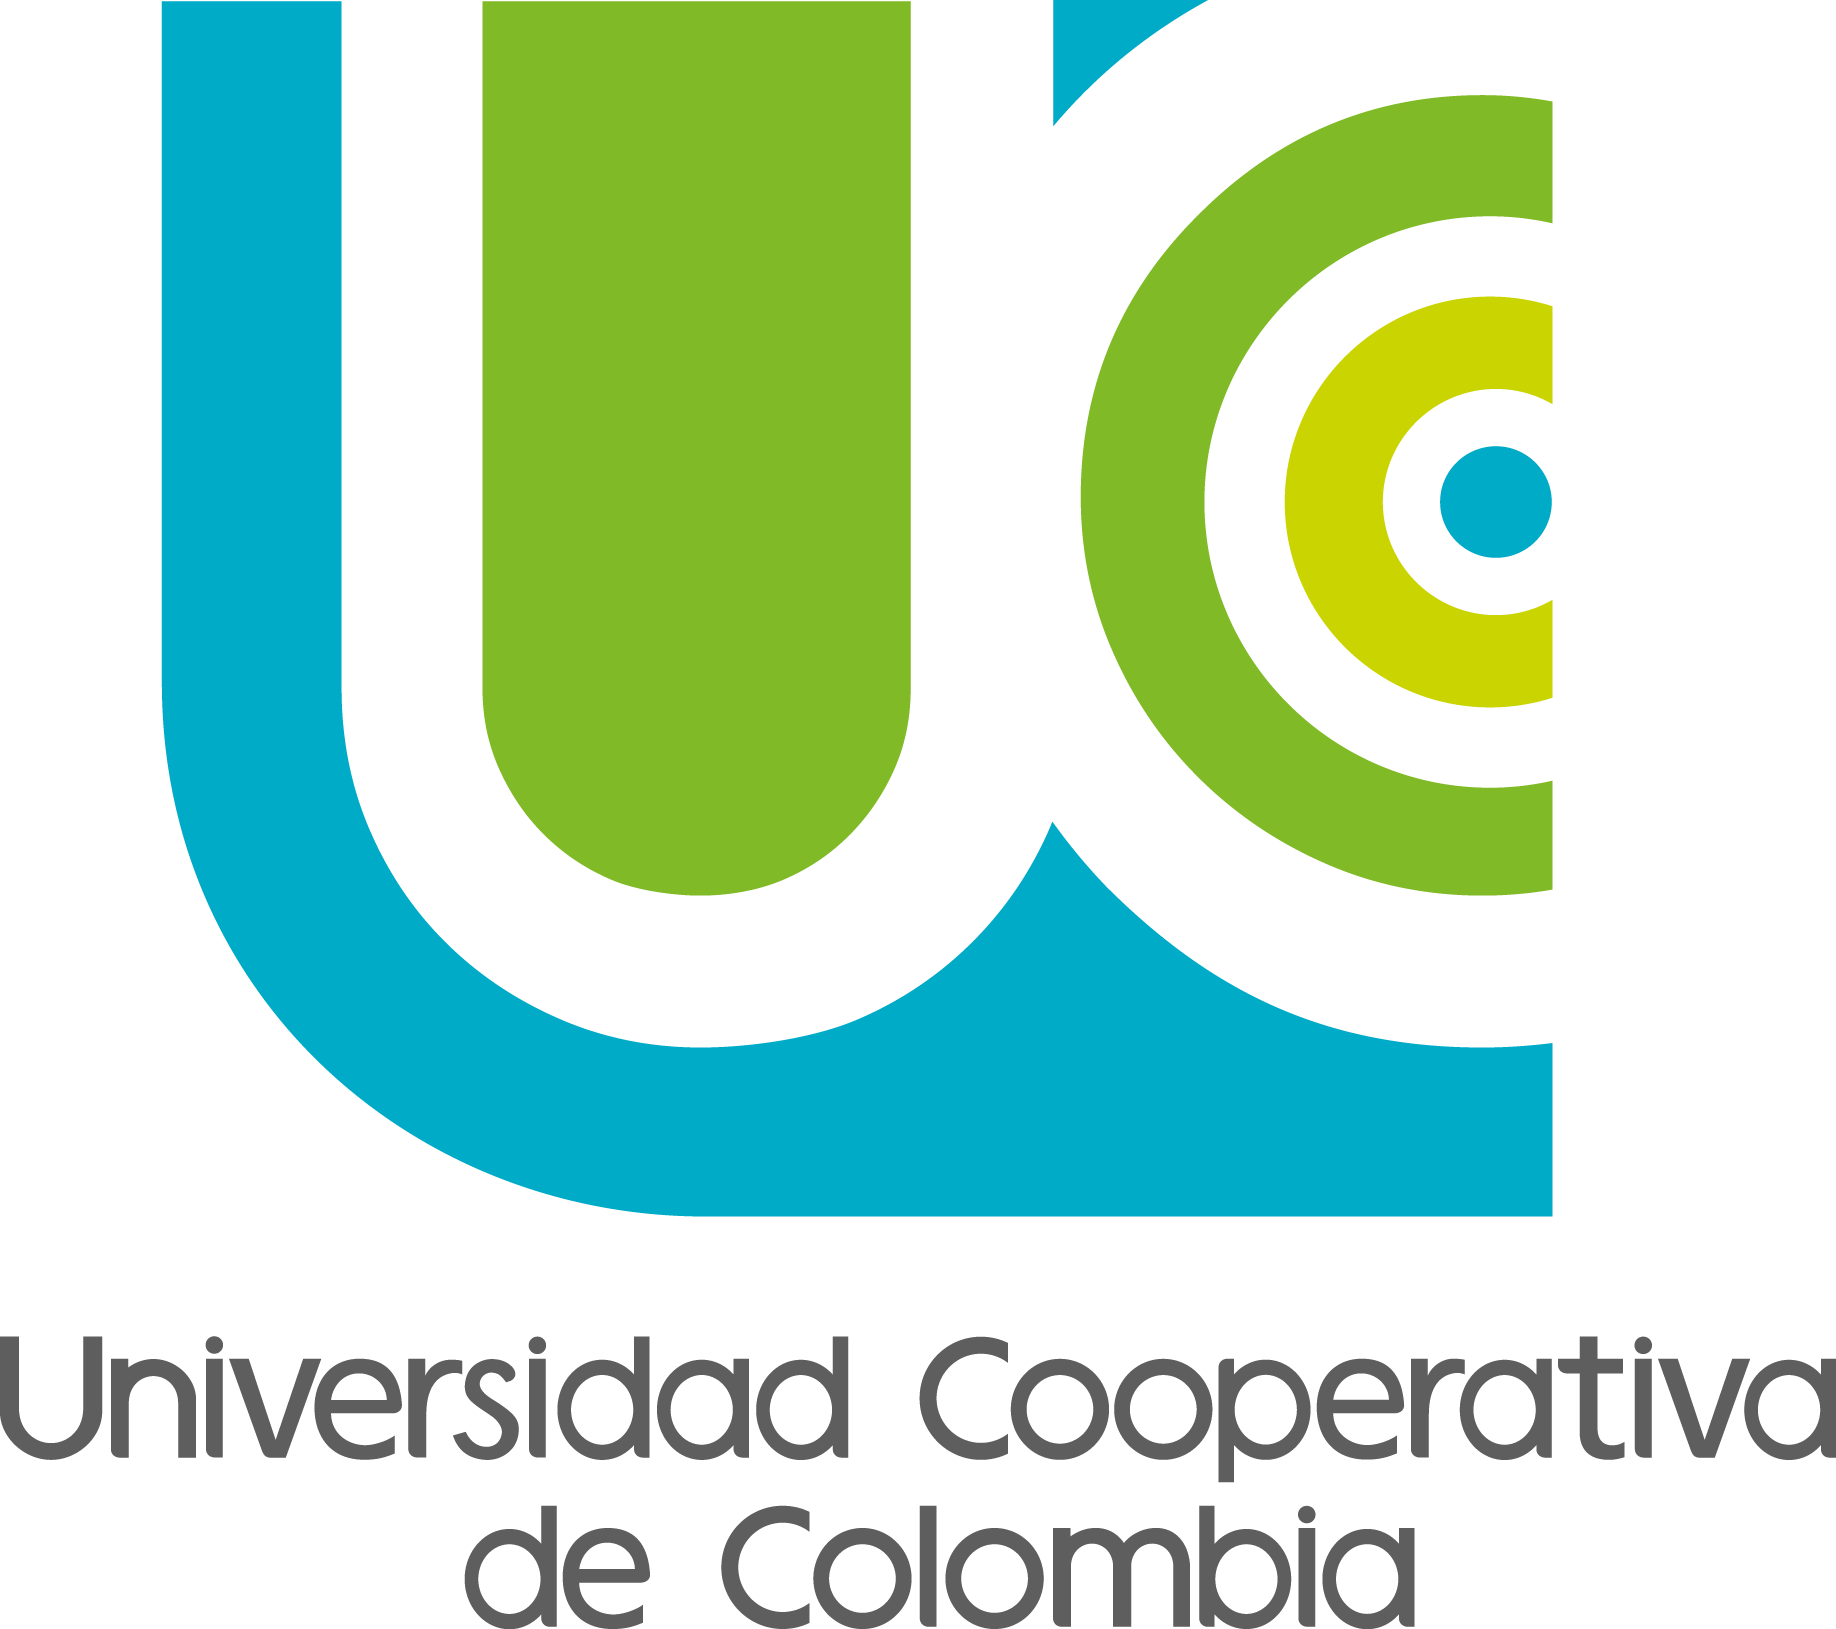 Universidad Cooperativa de Colombia